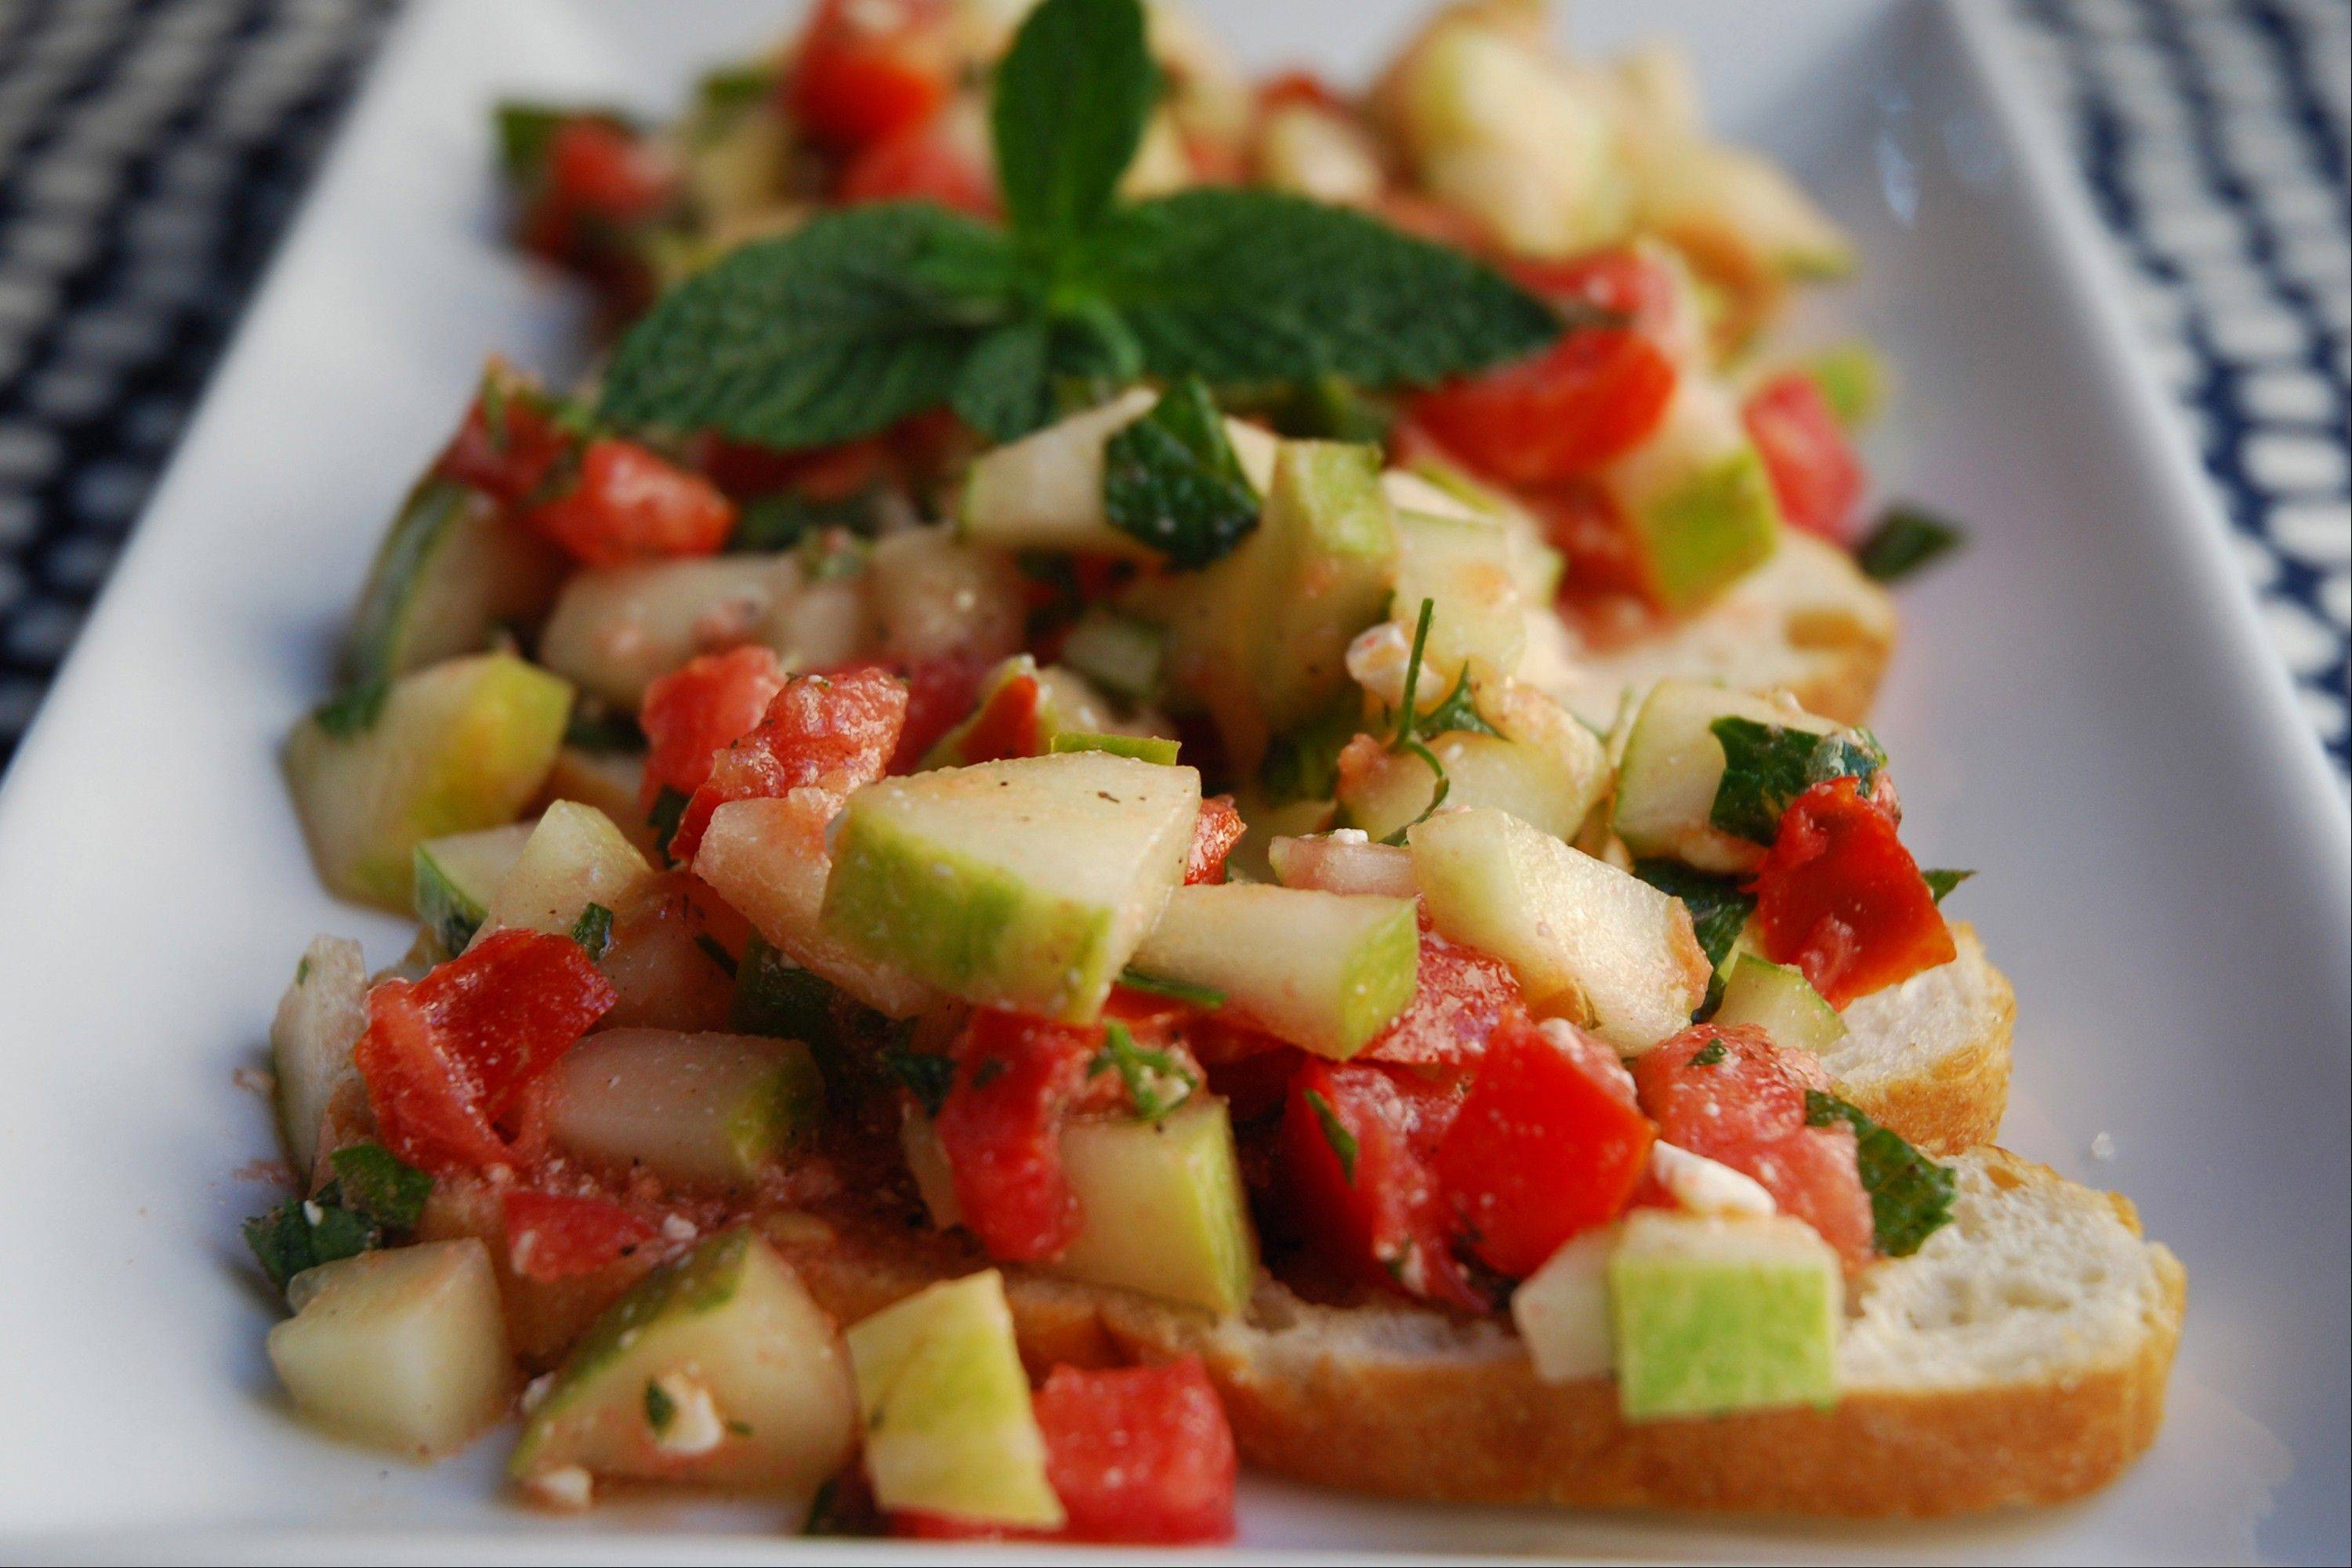 Crostini bring out fresh flavor of ripened tomatoes